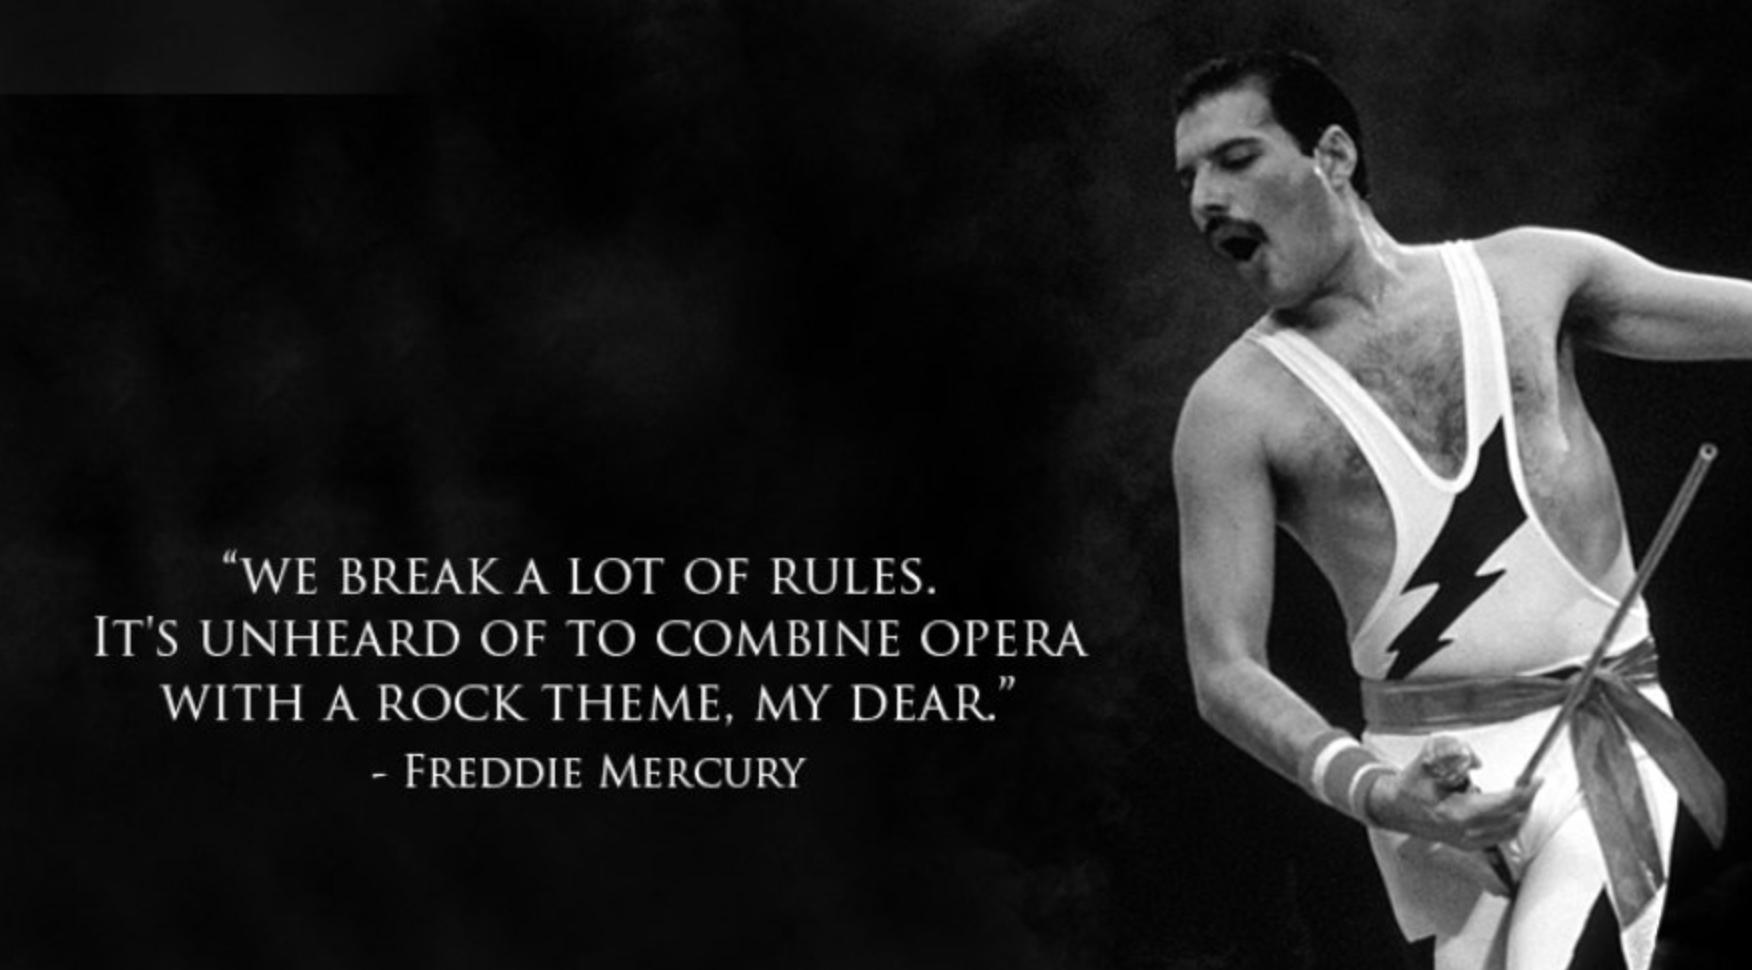 Freddie Mercury quote